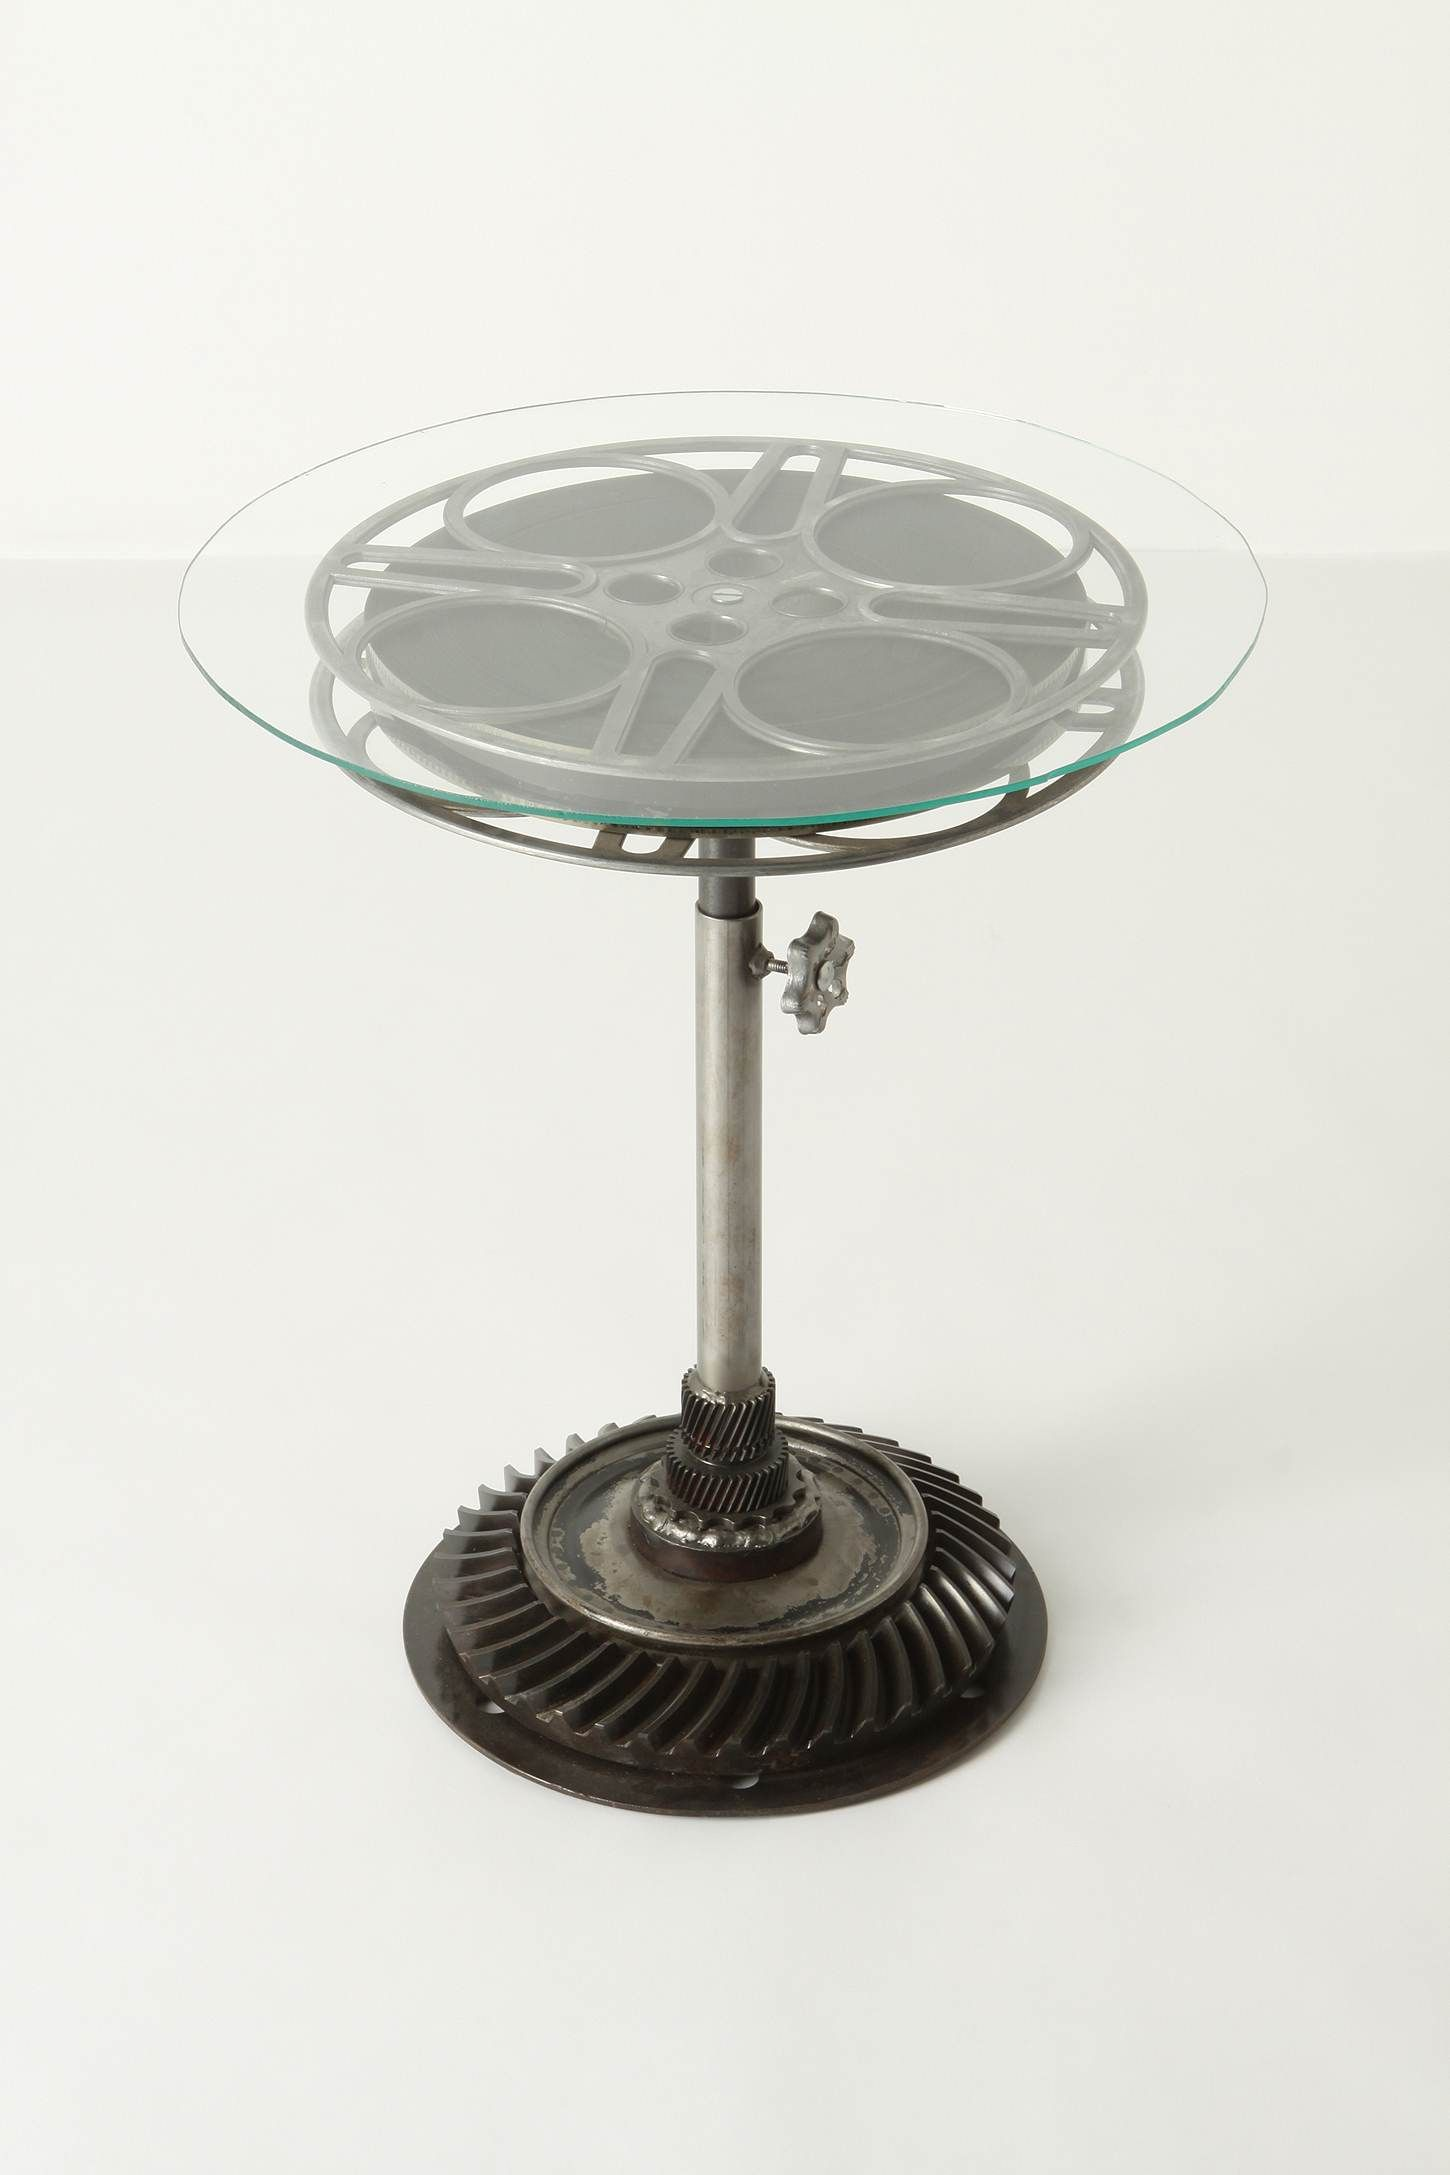 Genial Film Reel End Table $1,298.00 From Anthropologie. @Olivia Younan   Wish I  Could Get This For You!